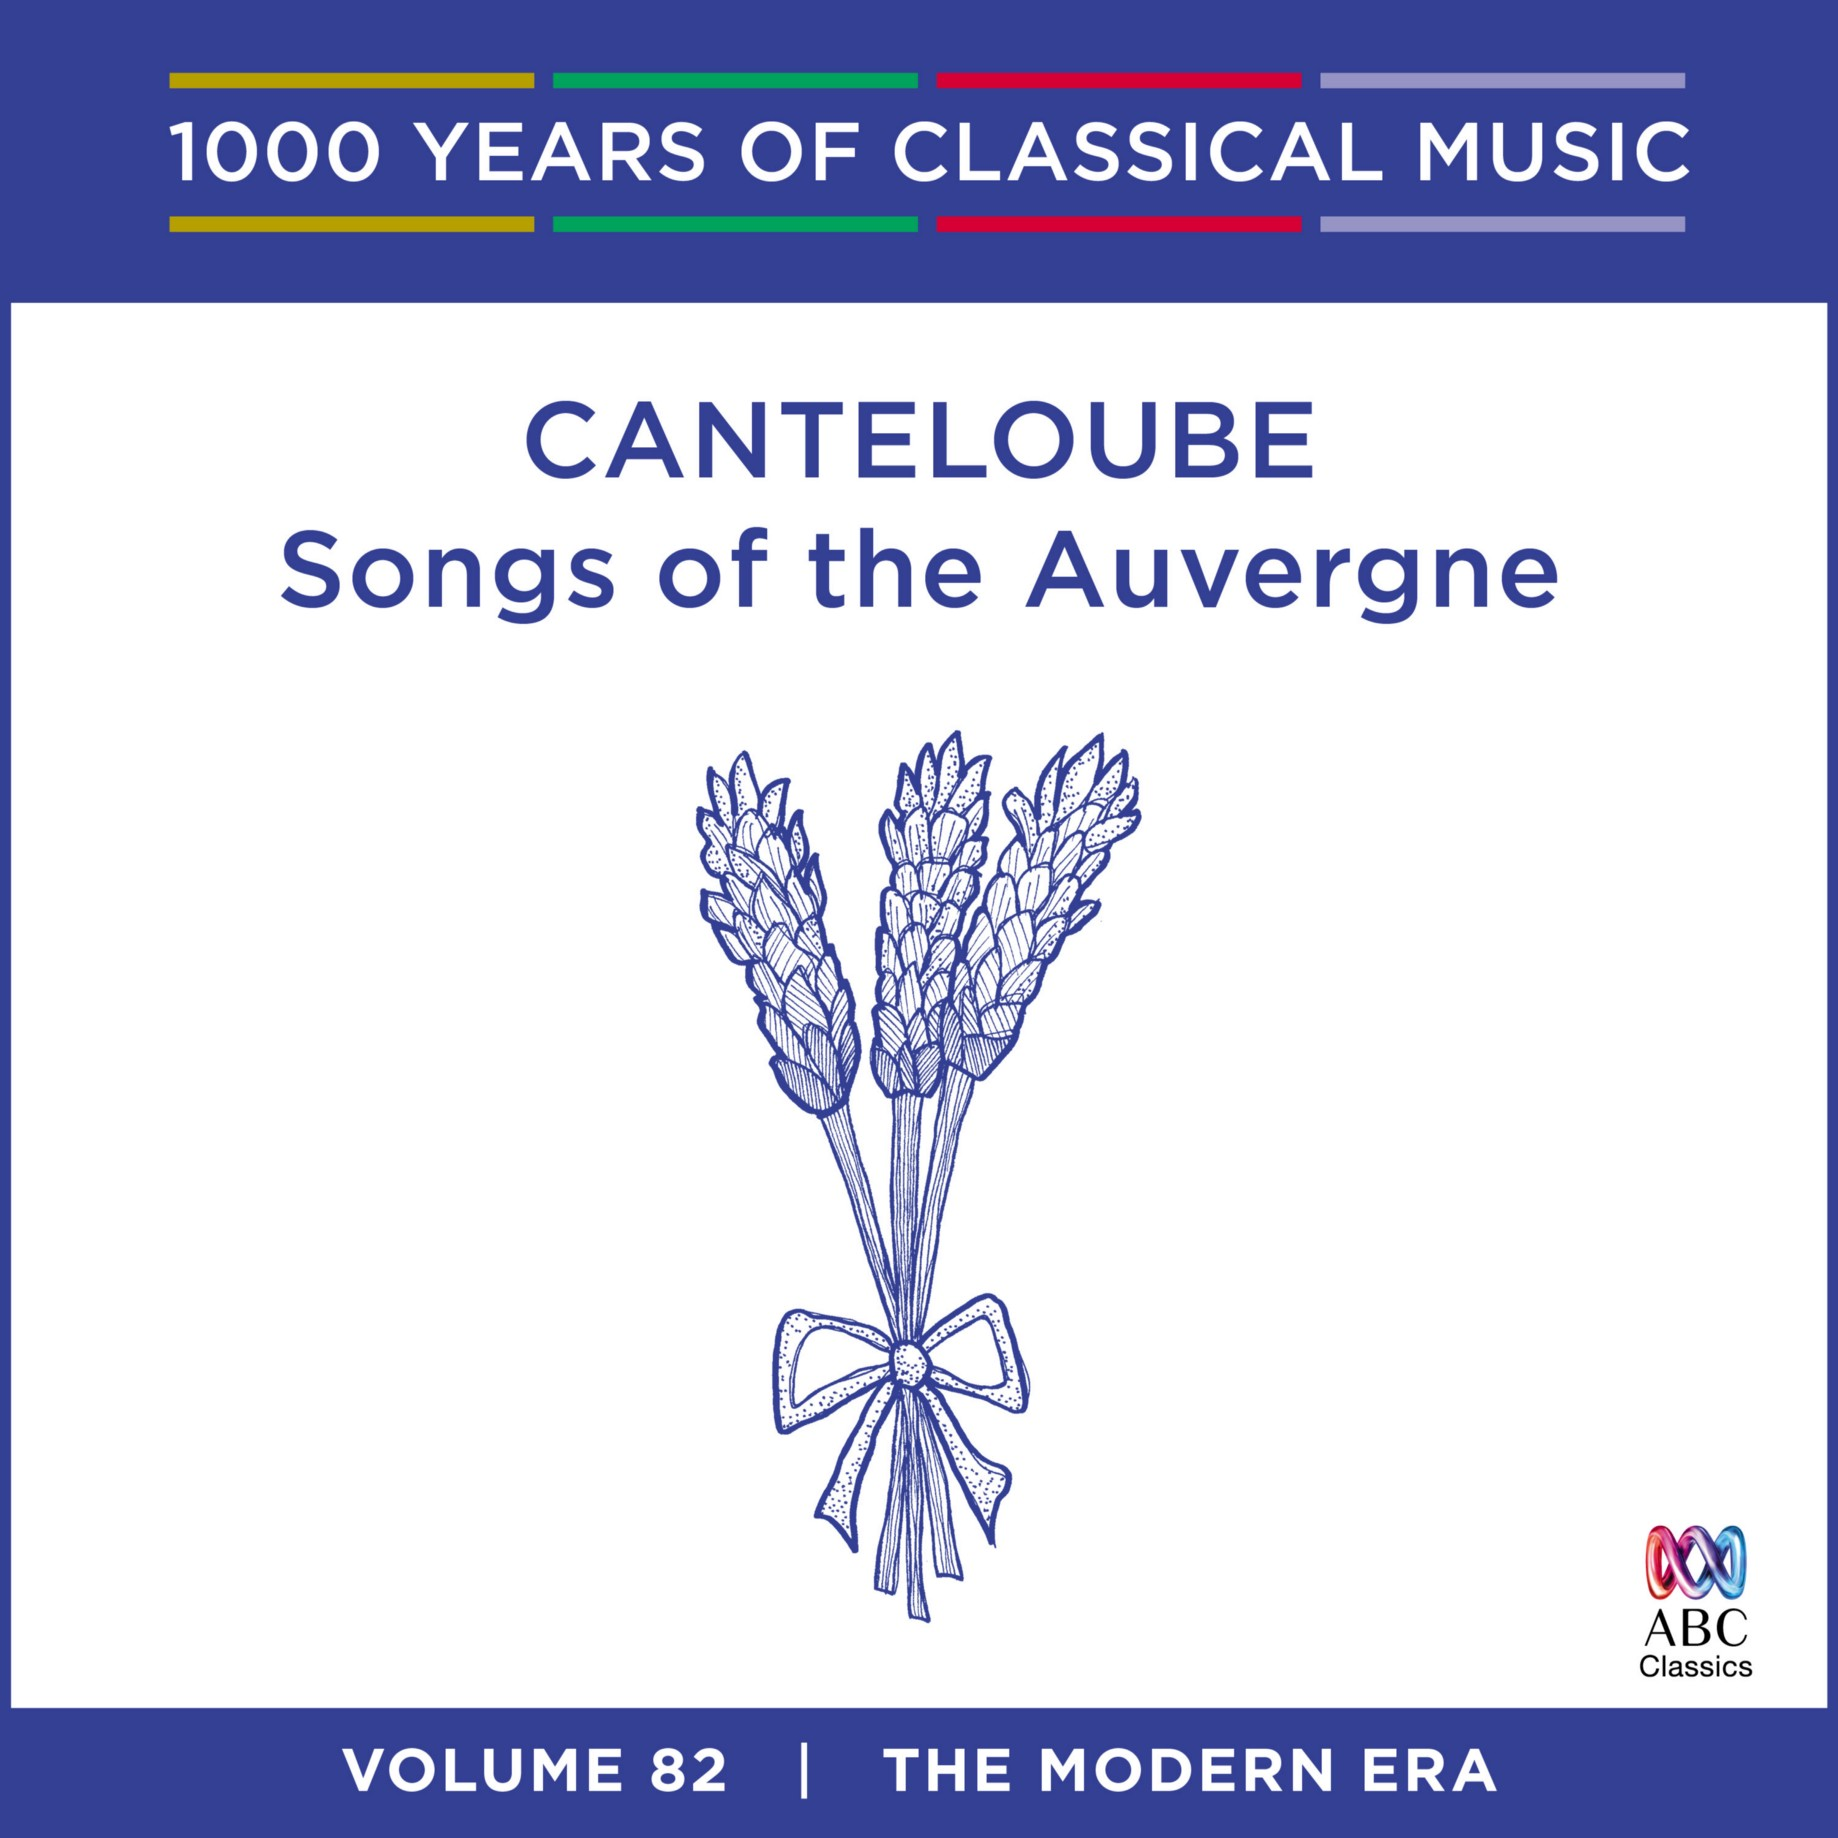 Canteloube — Songs of the Auvergne - 1000 Years of Classical